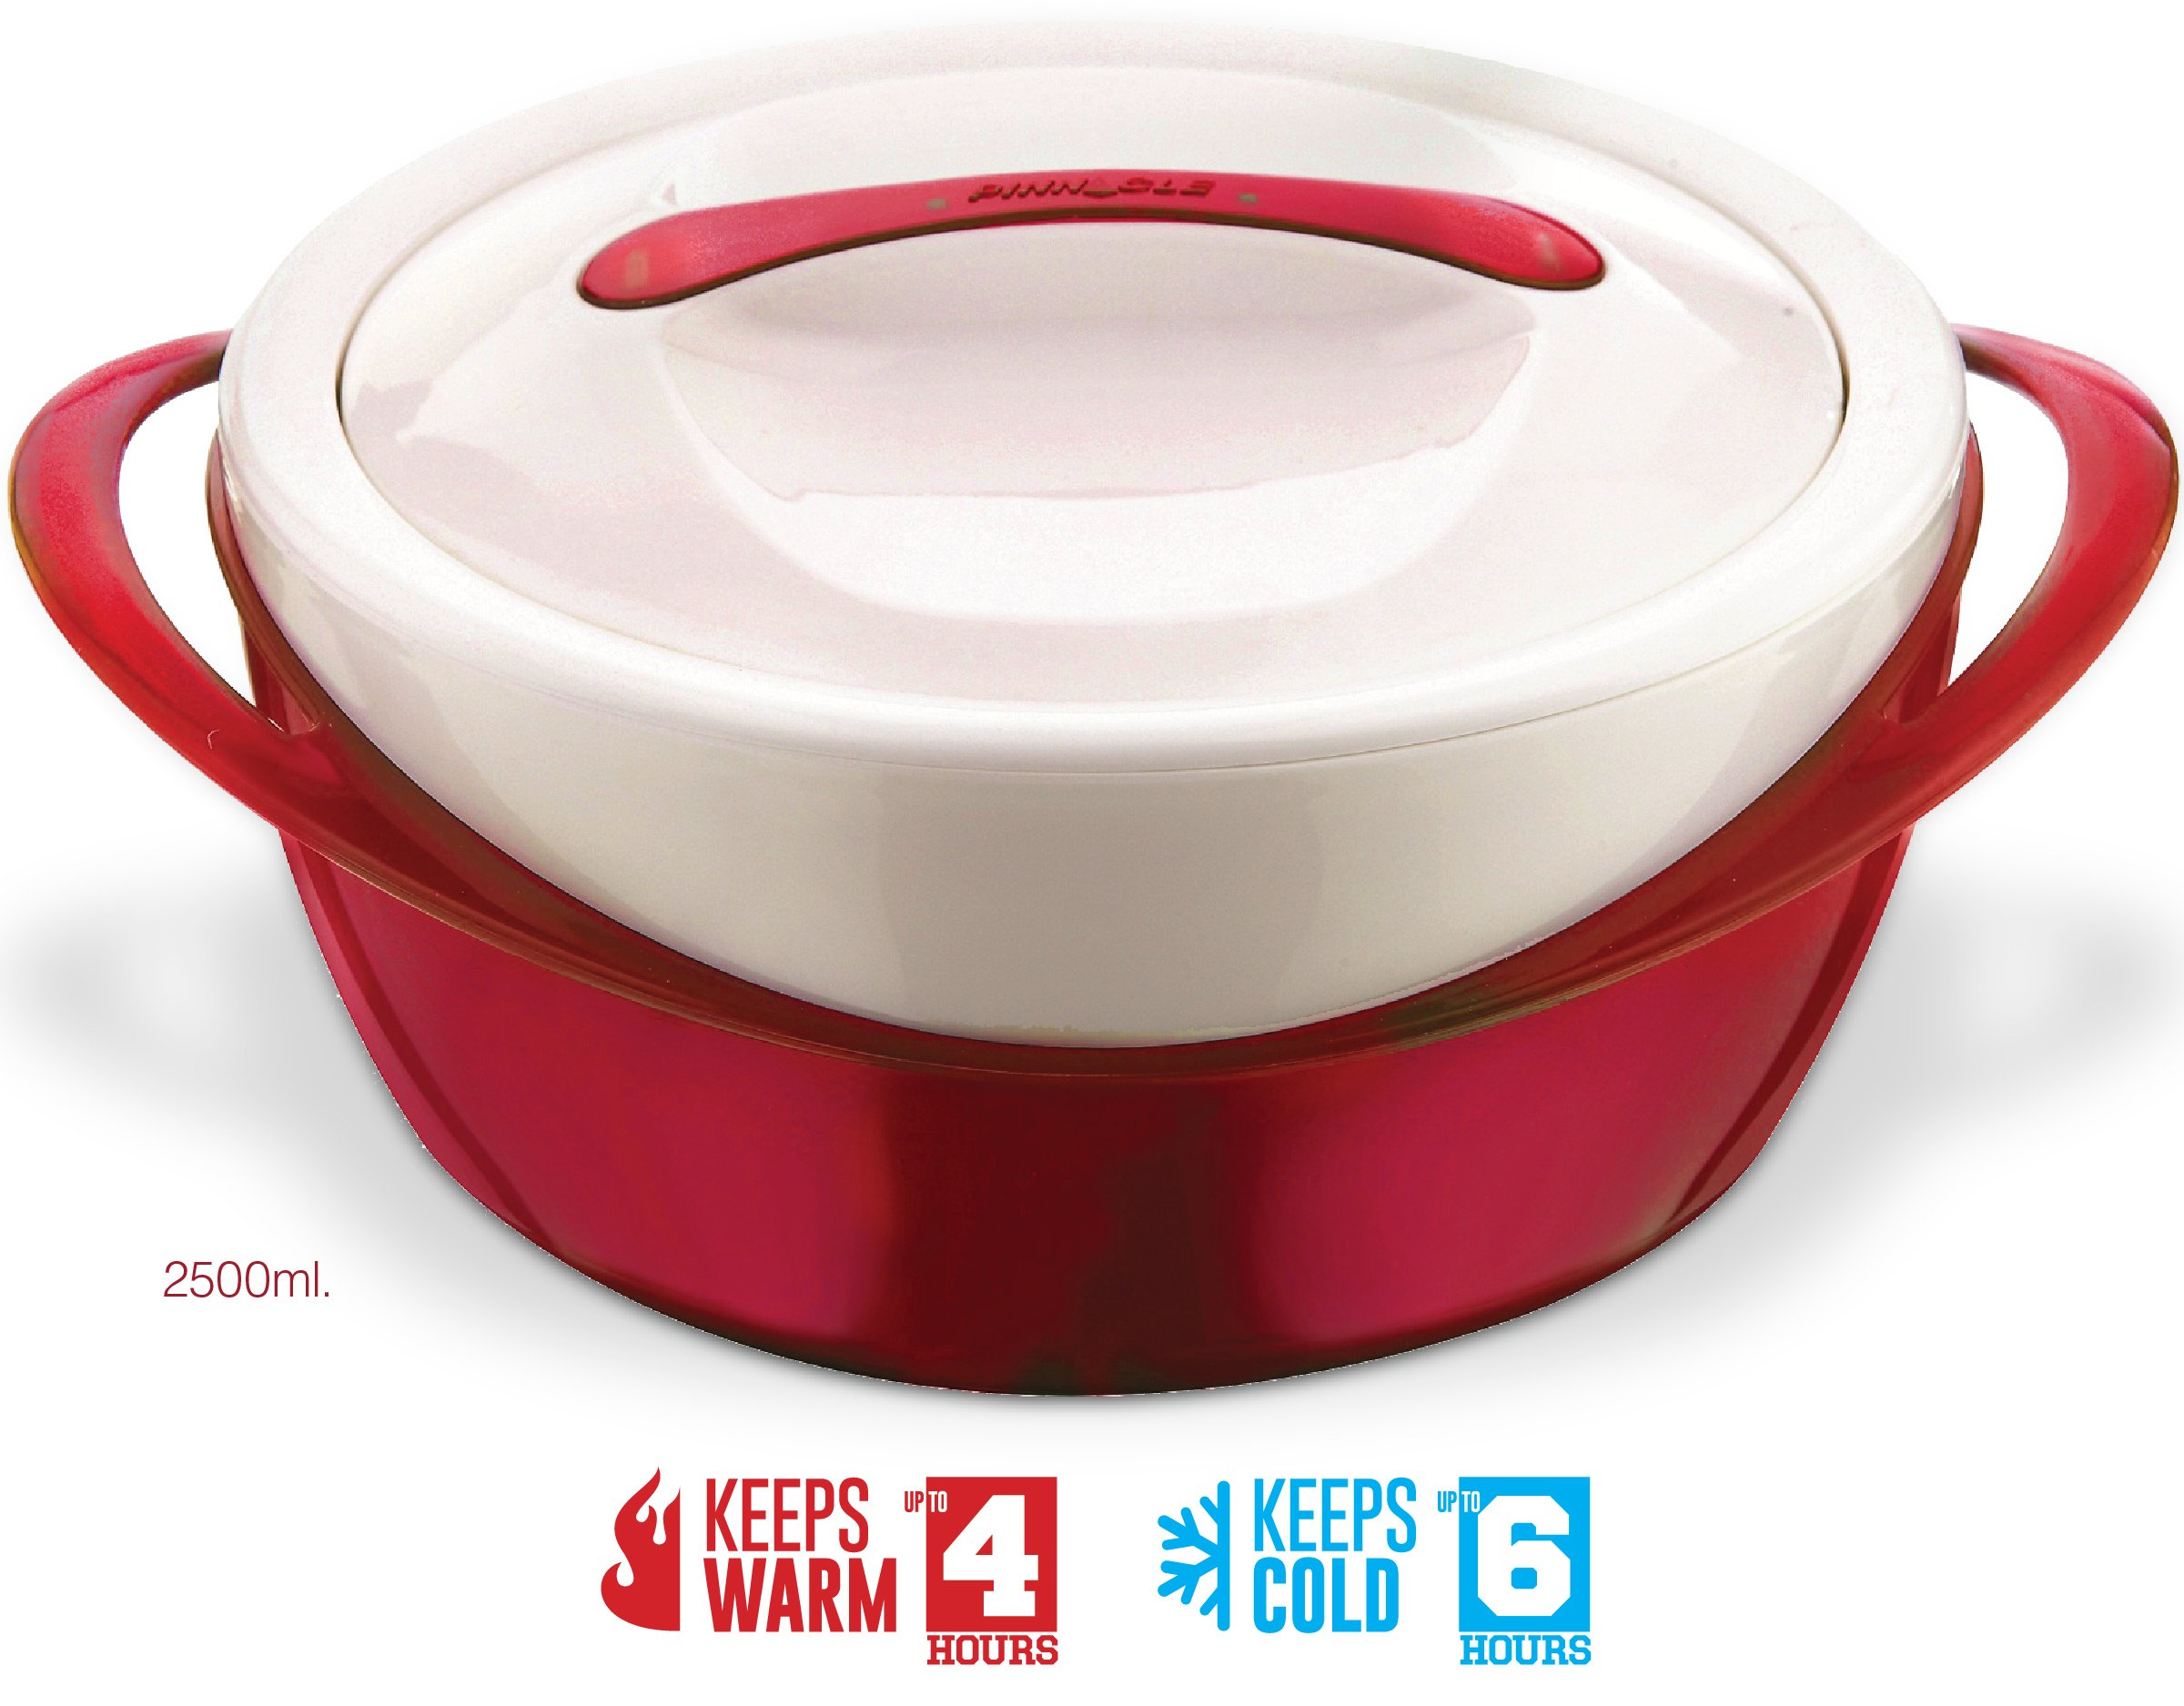 Pinnacle Casserole Dish - Large Soup and Salad Bowl - Insulated Serving Bowl With Lid - Red